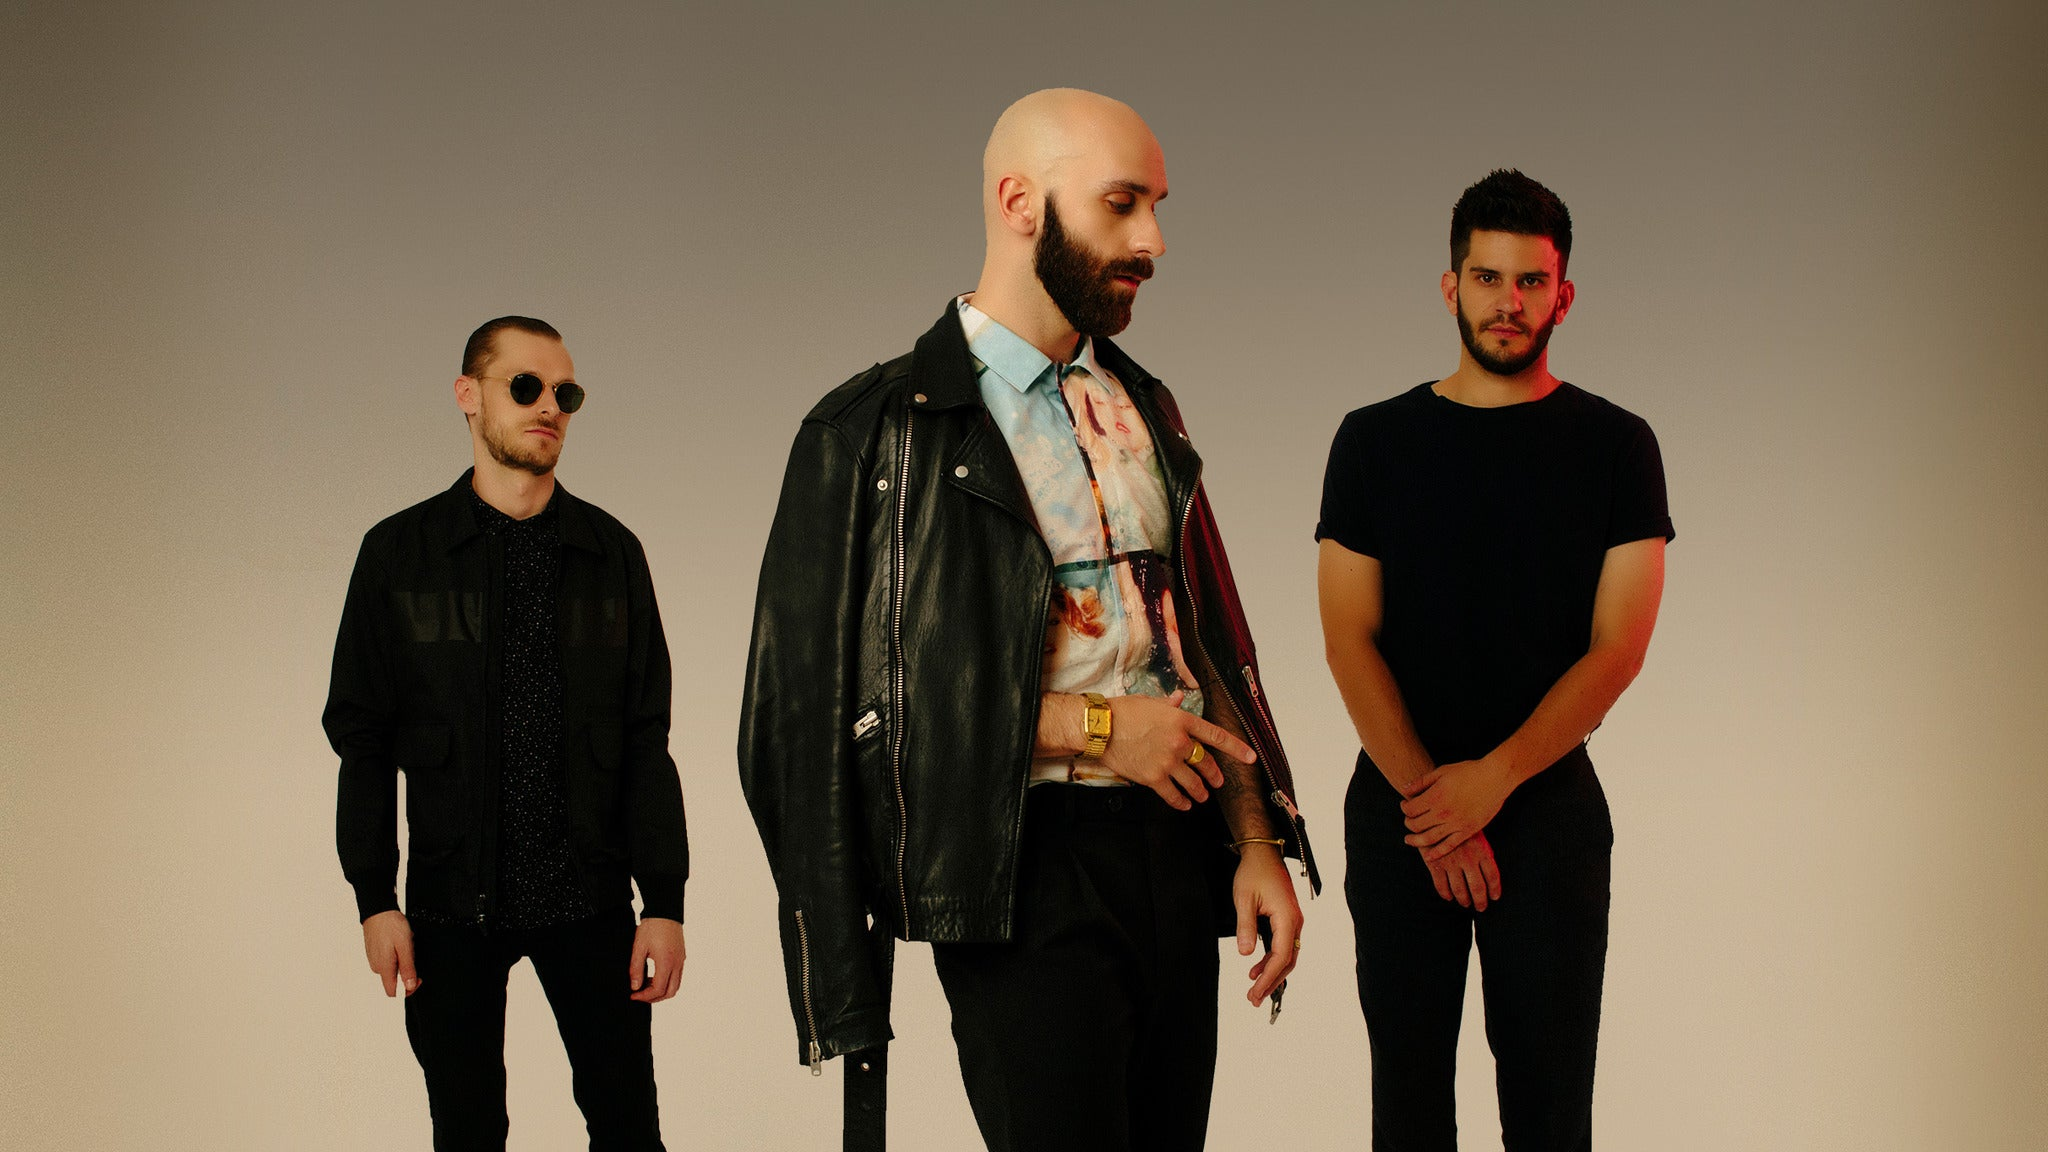 105.7 The Point HoHo Show Featuring: X Ambassadors